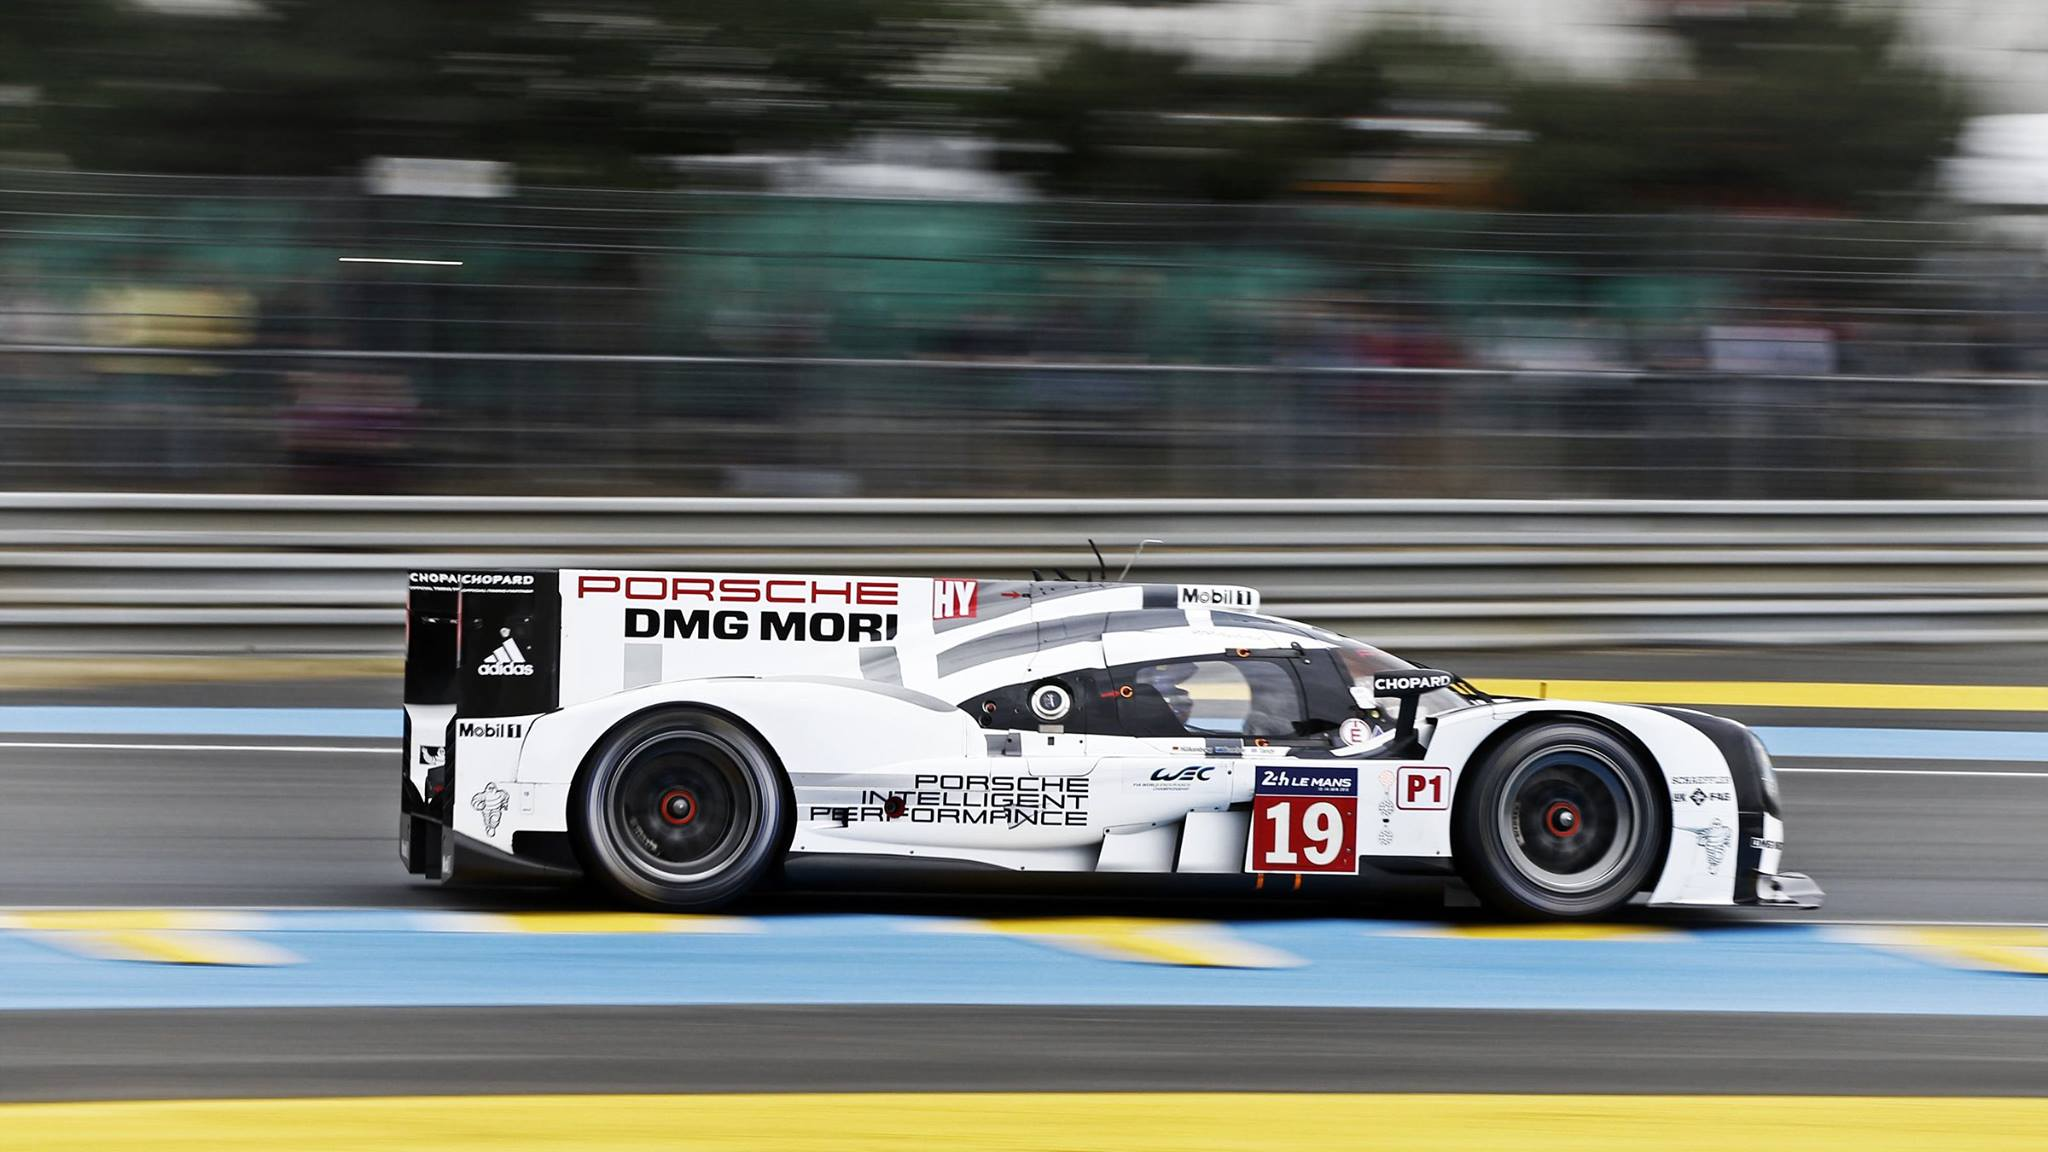 porsche remporte les 24 heures du mans 2015 pilote de course. Black Bedroom Furniture Sets. Home Design Ideas